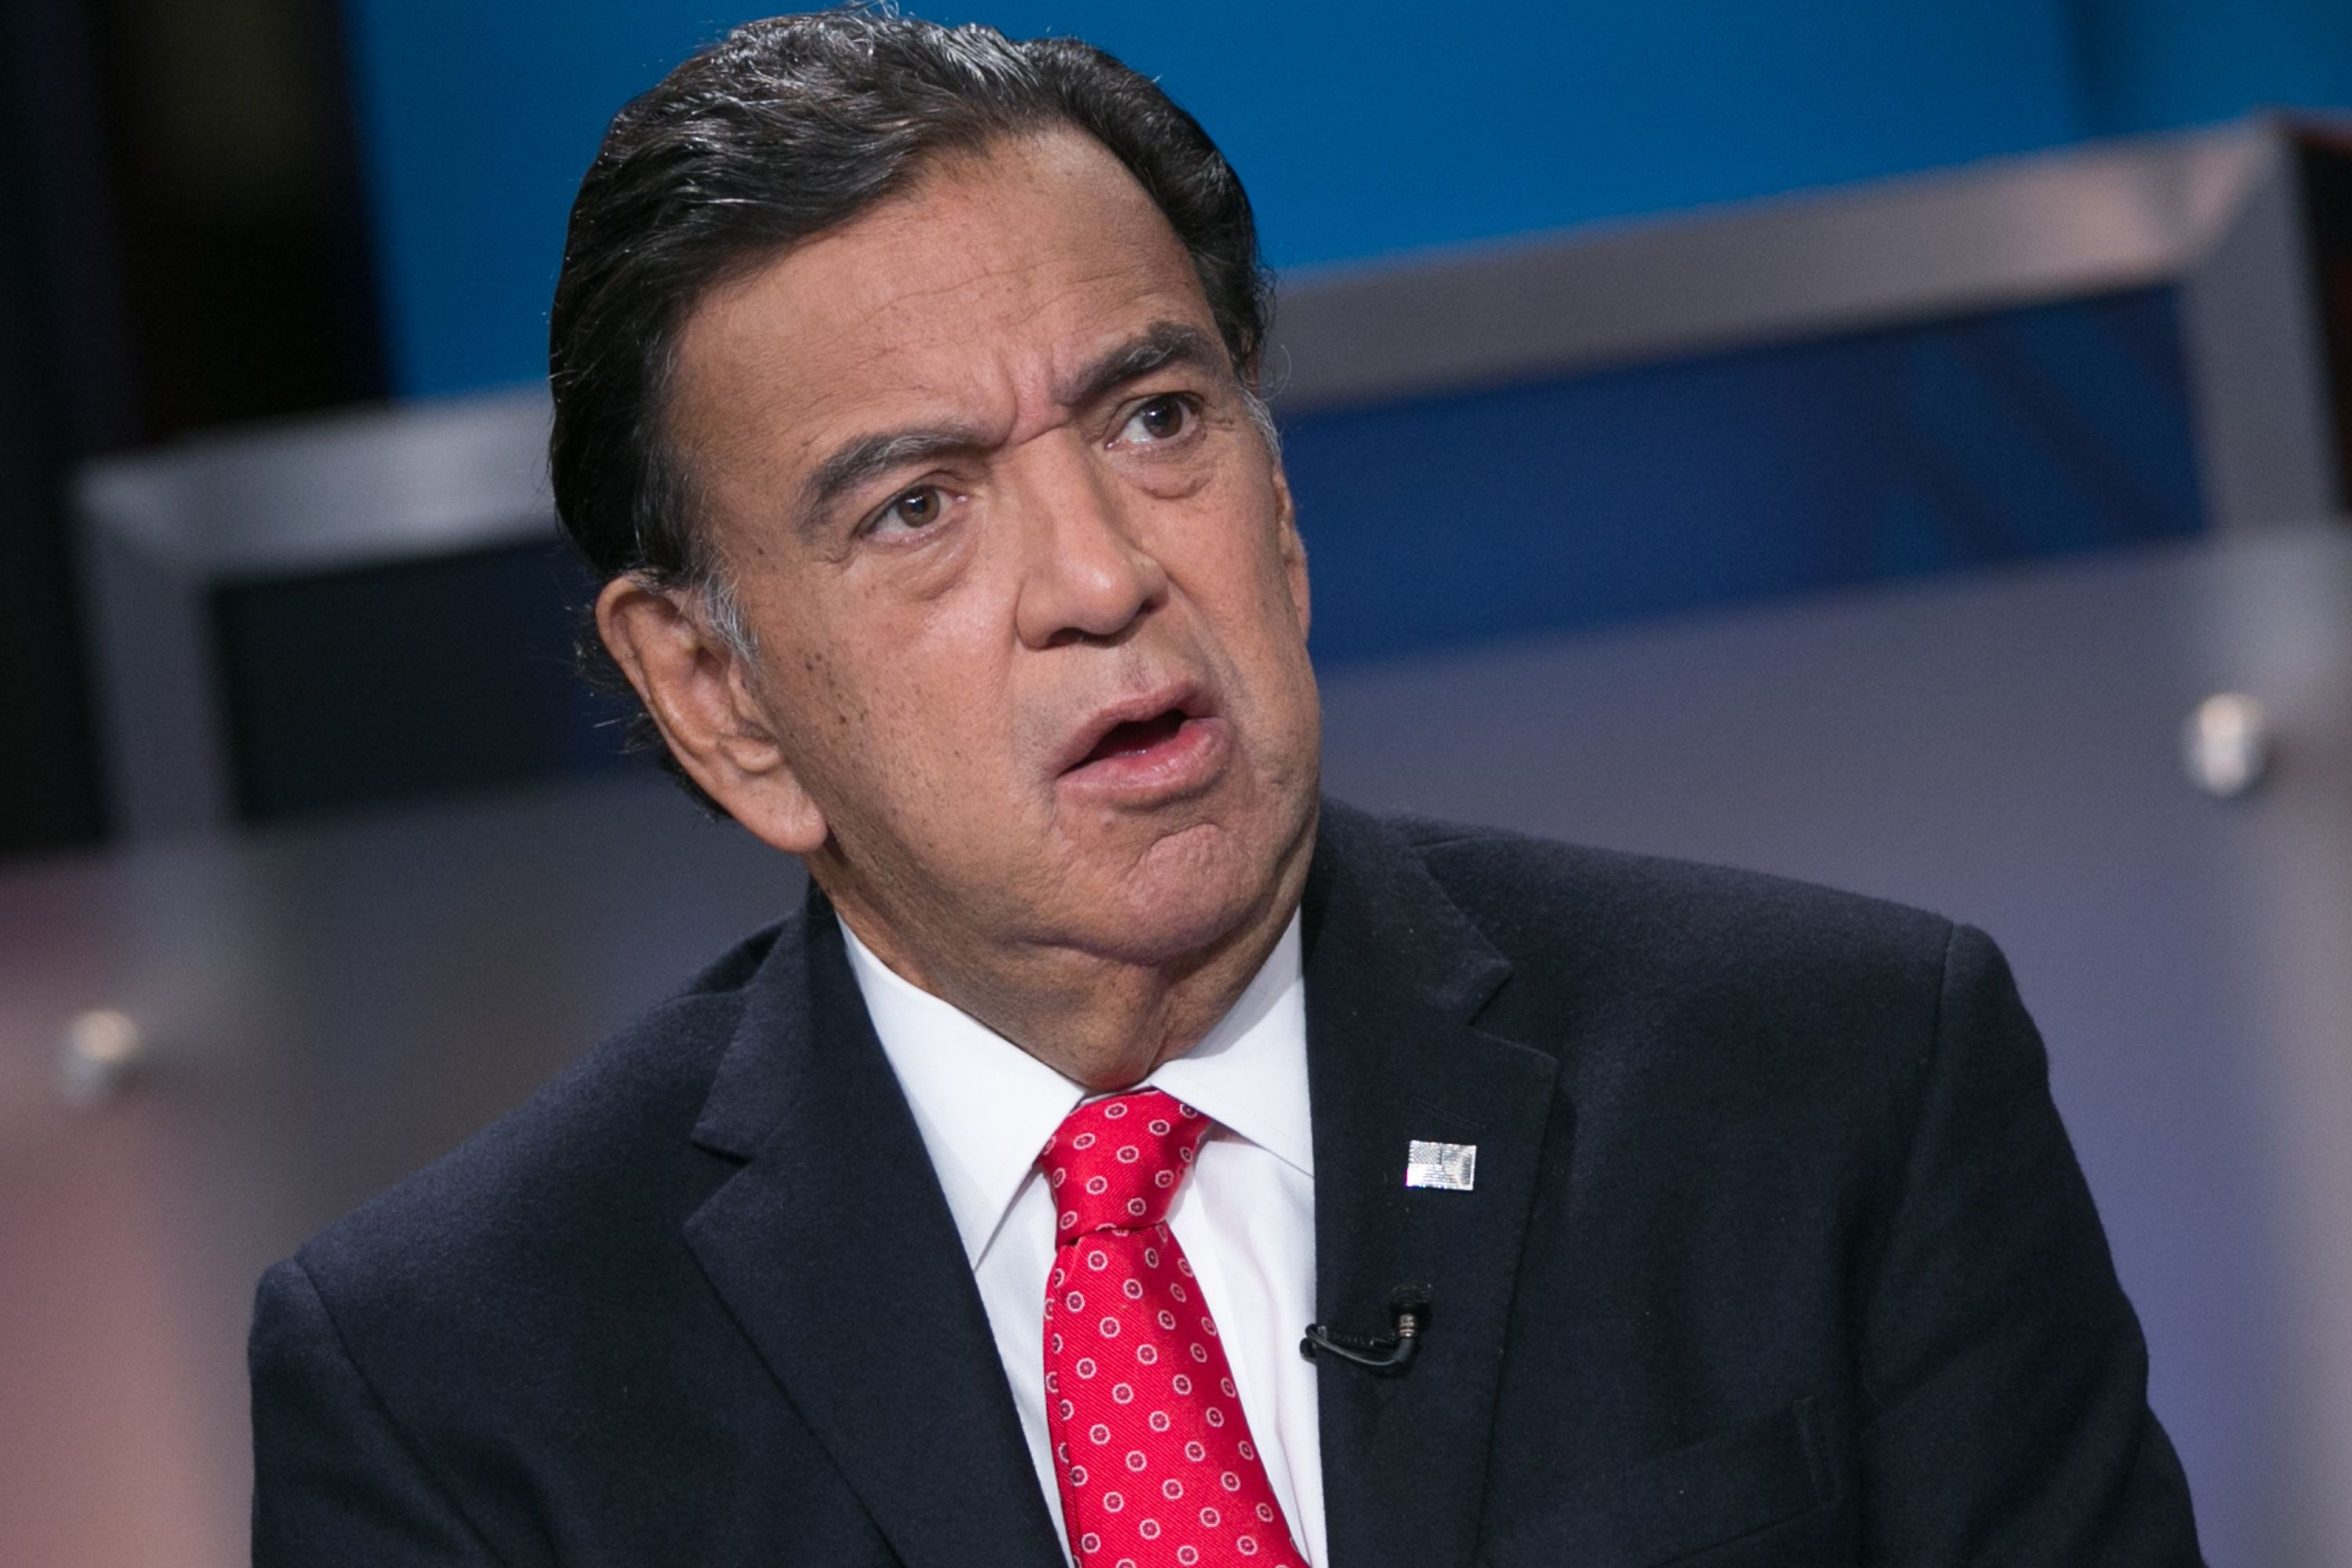 SQUAWK BOX -- Pictured: Bill Richardson, former Governor of New Mexico, in an interview on January 13, 2015 -- (Photo by: Adam Jeffery/CNBC/NBCU Photo Bank via Getty Images)